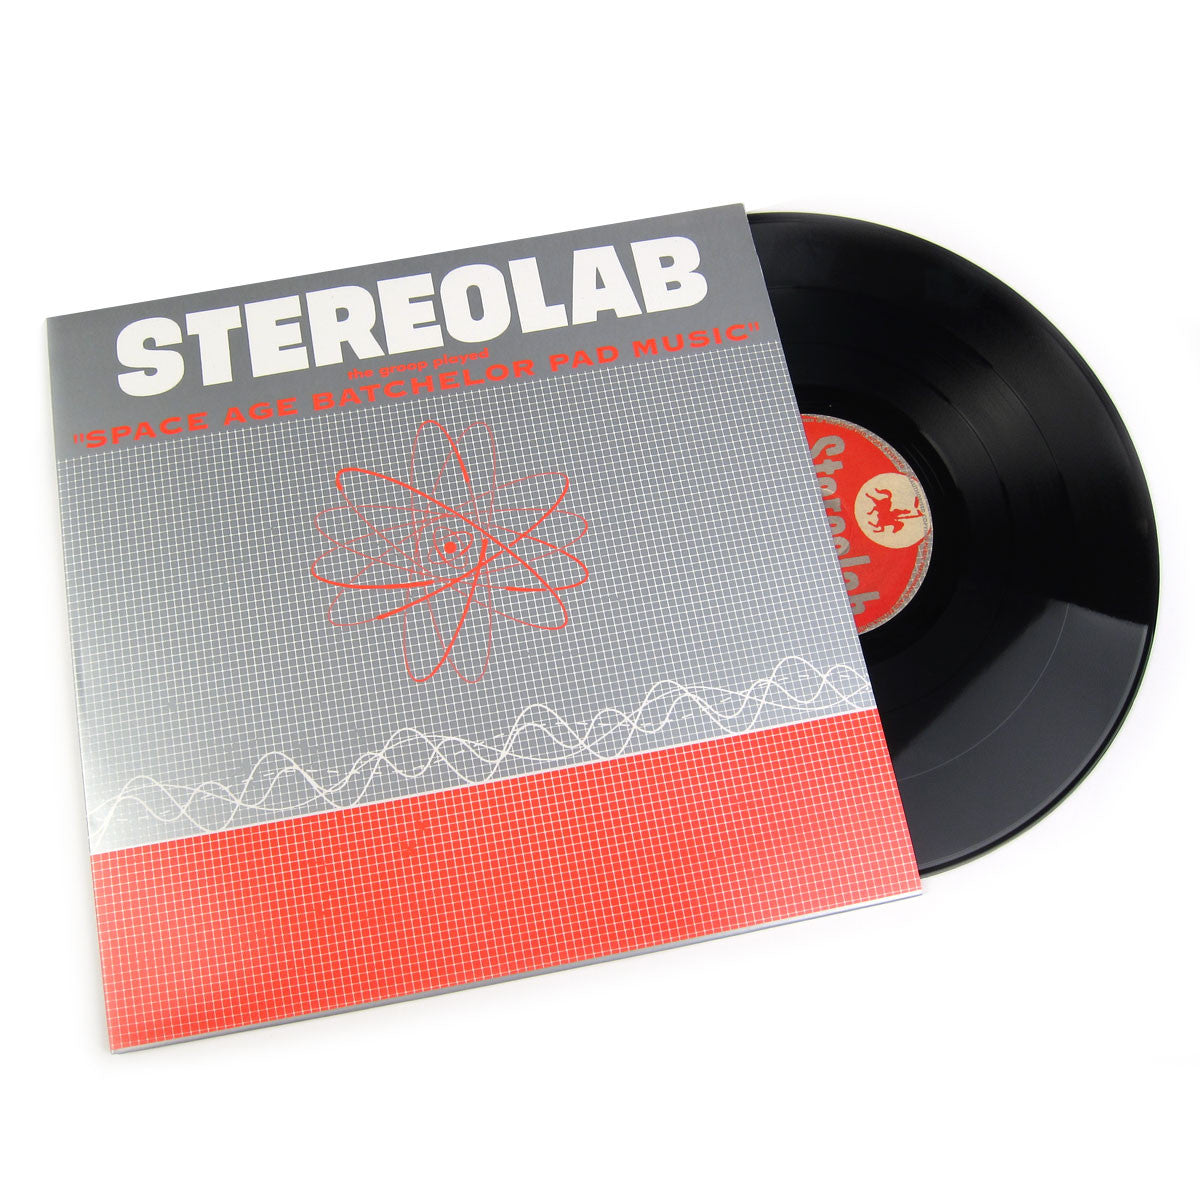 "Stereolab: The Groop Played ""Space Age Batchelor Pad Music"" Vinyl LP"